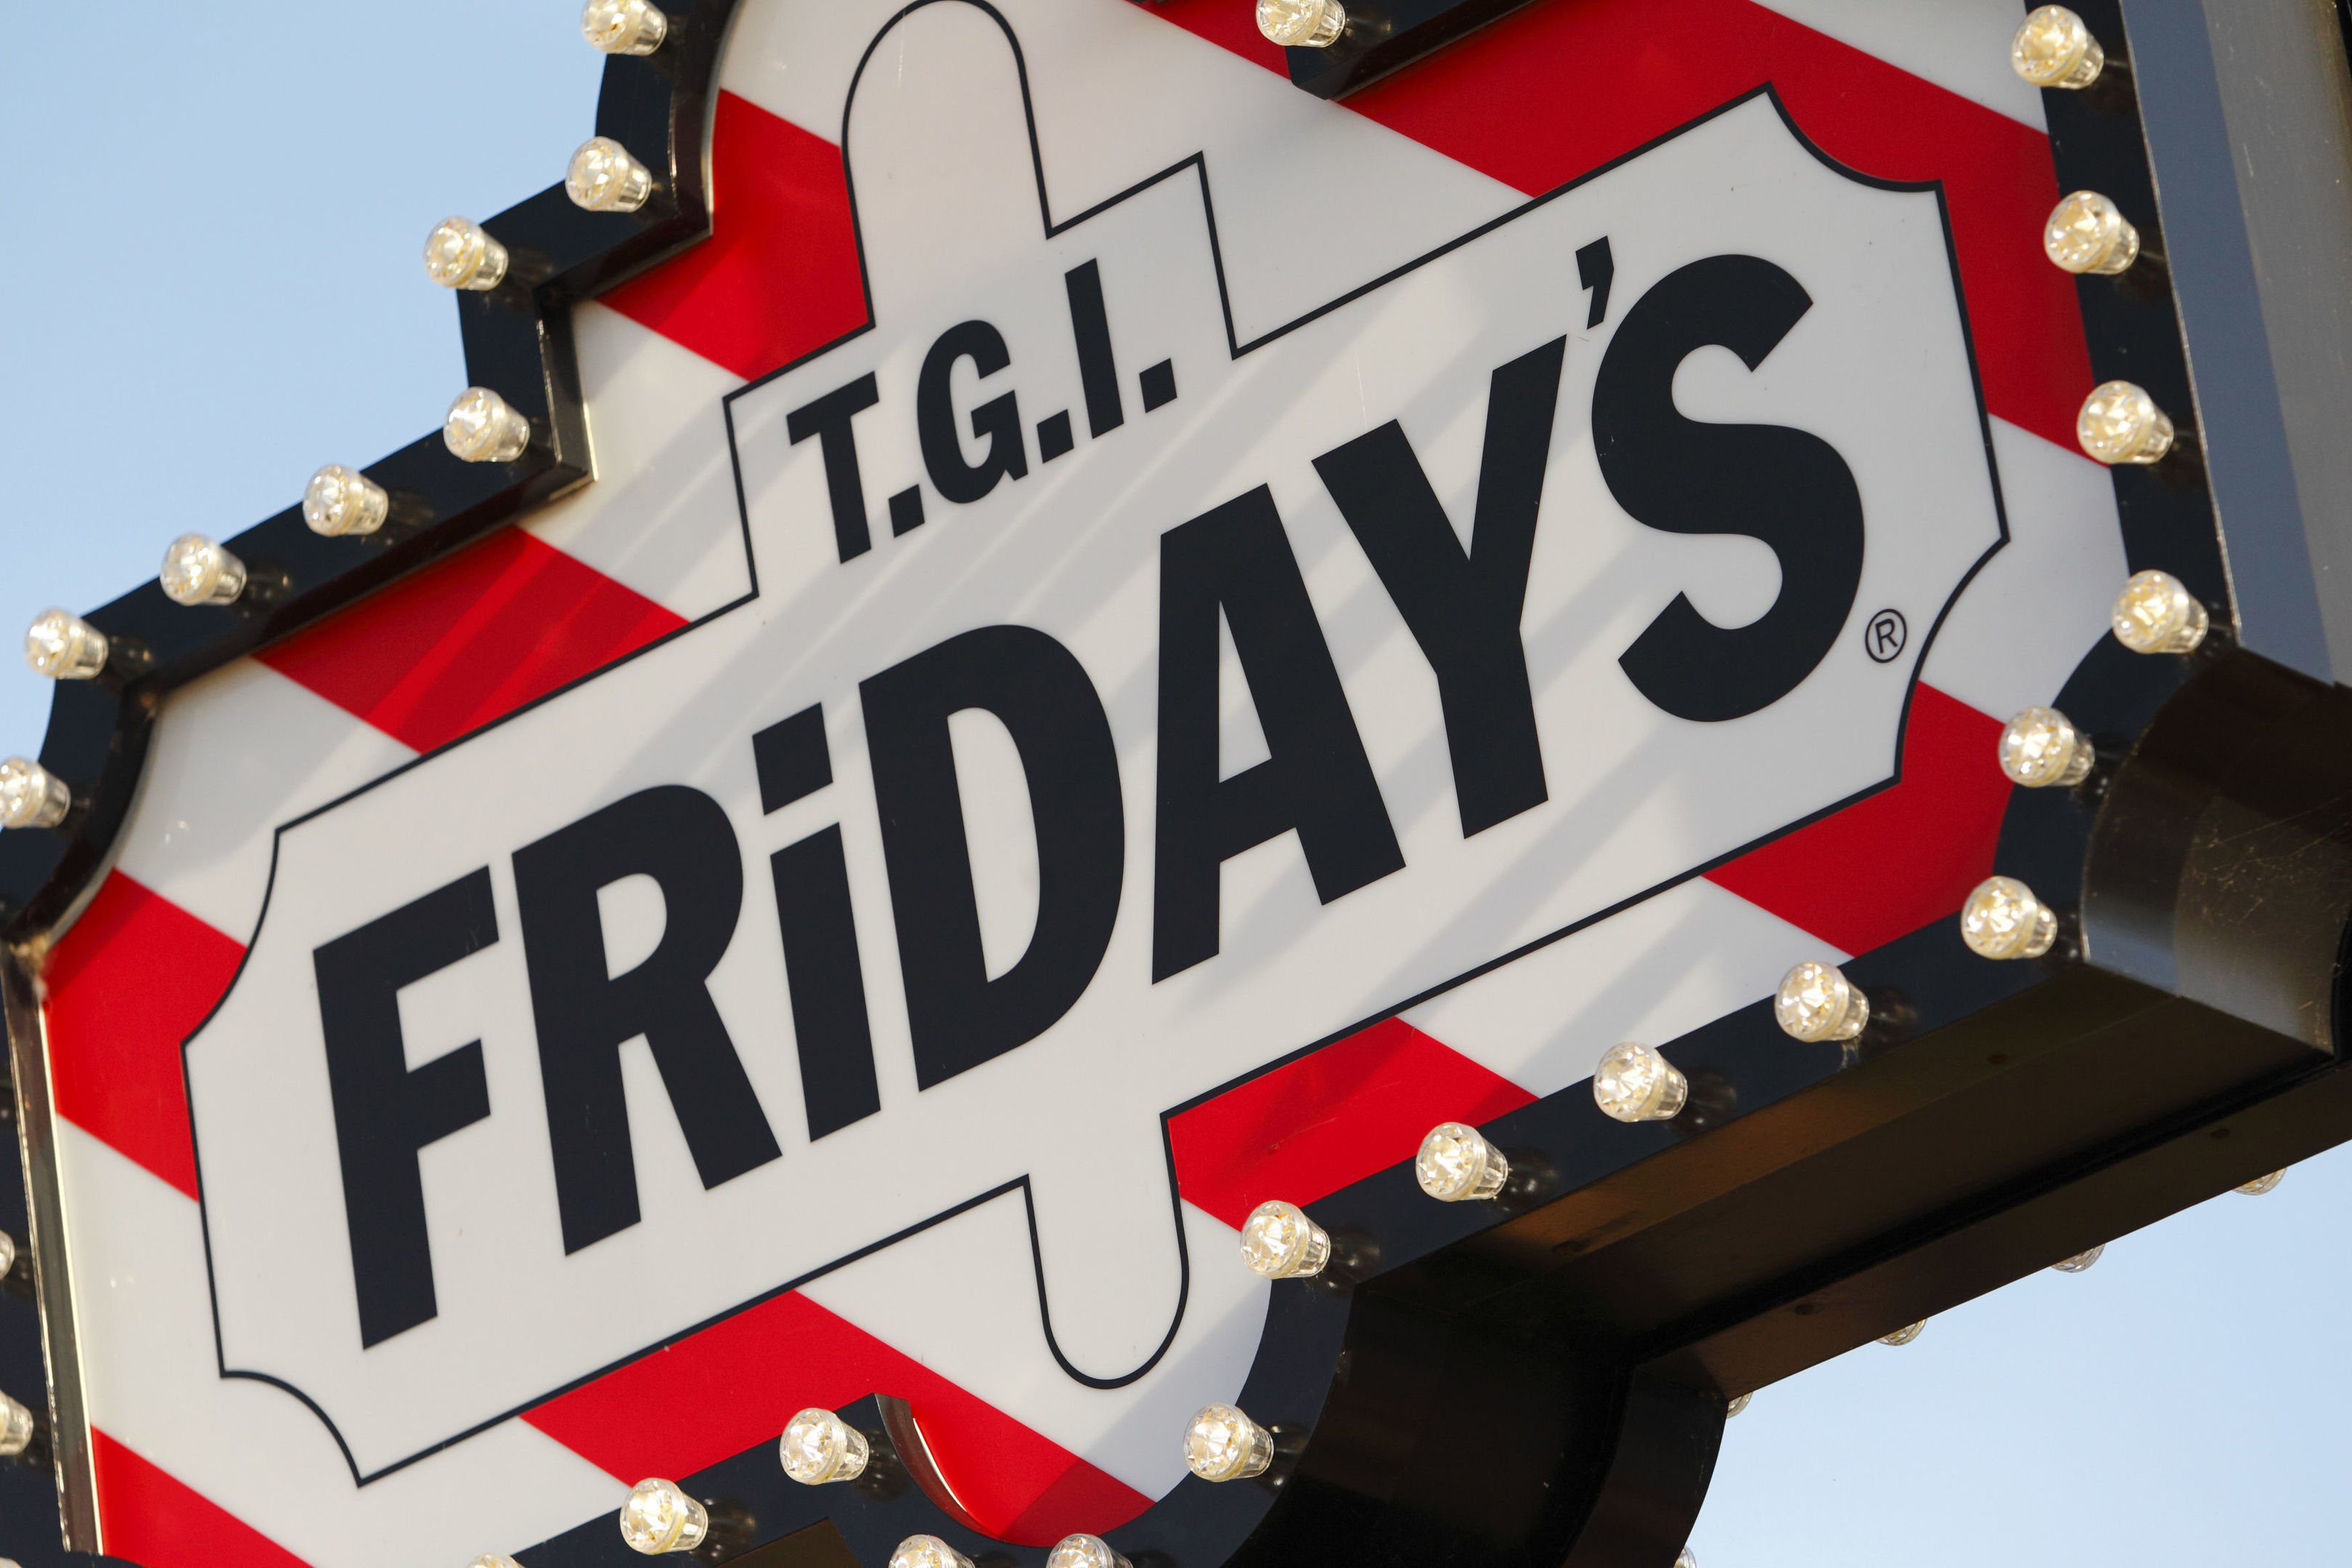 Workers from companies such as TGI Fridays will take day of action today over pay disputes .(Chris Ison/PA Wire)